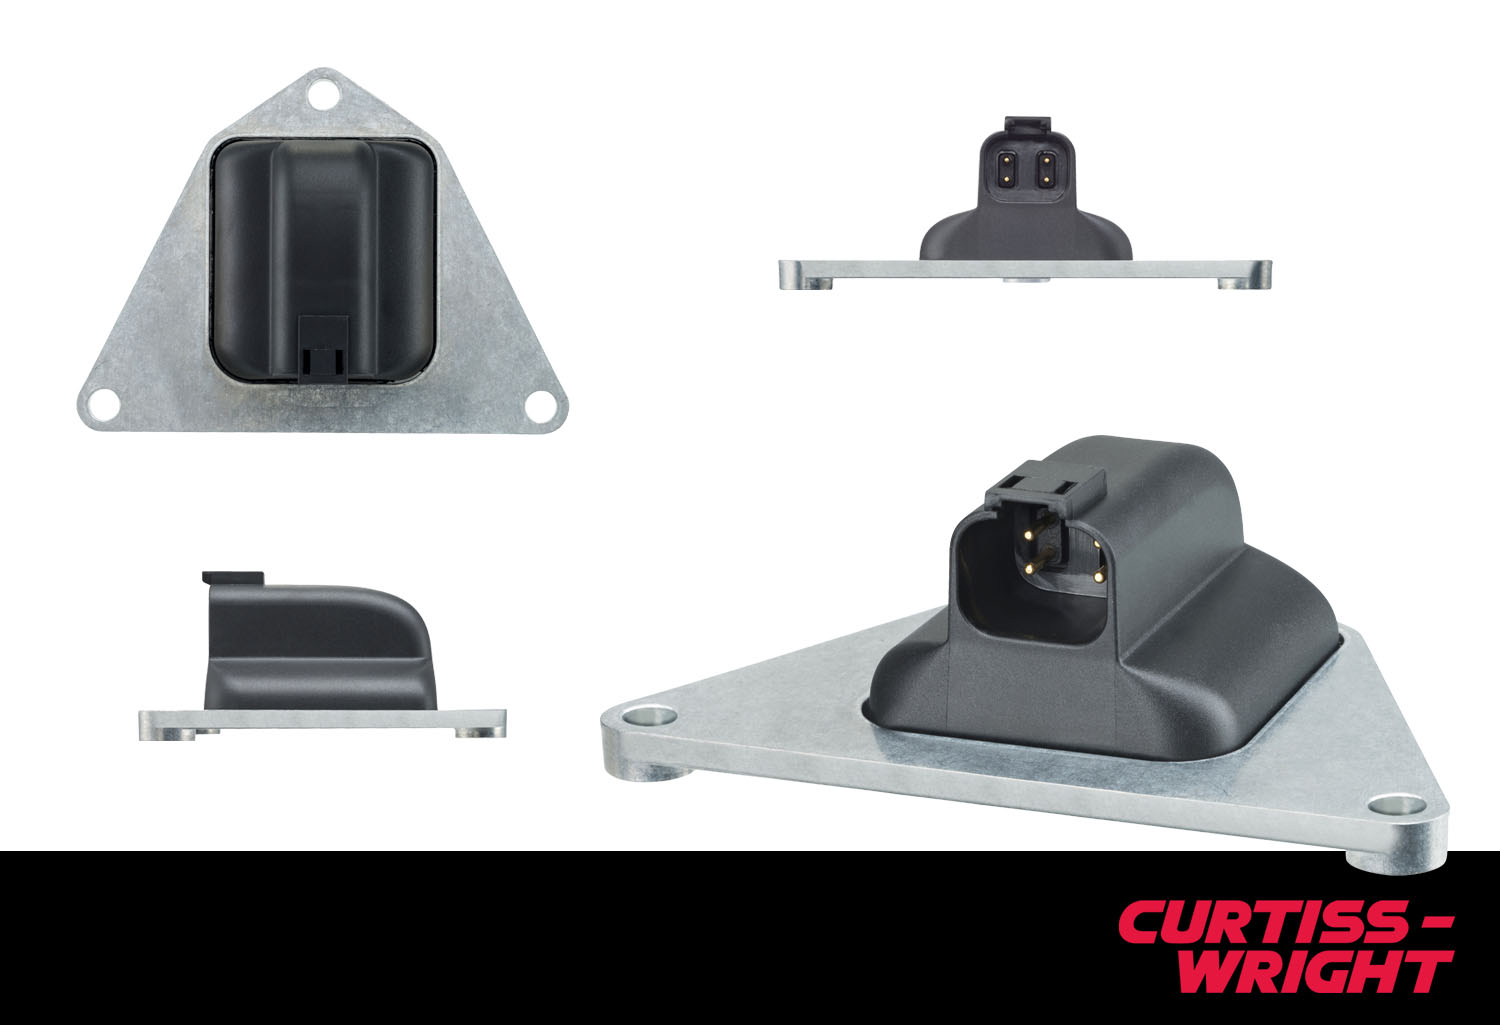 Curtiss_Wright_New_Tilt_Sensor.jpg